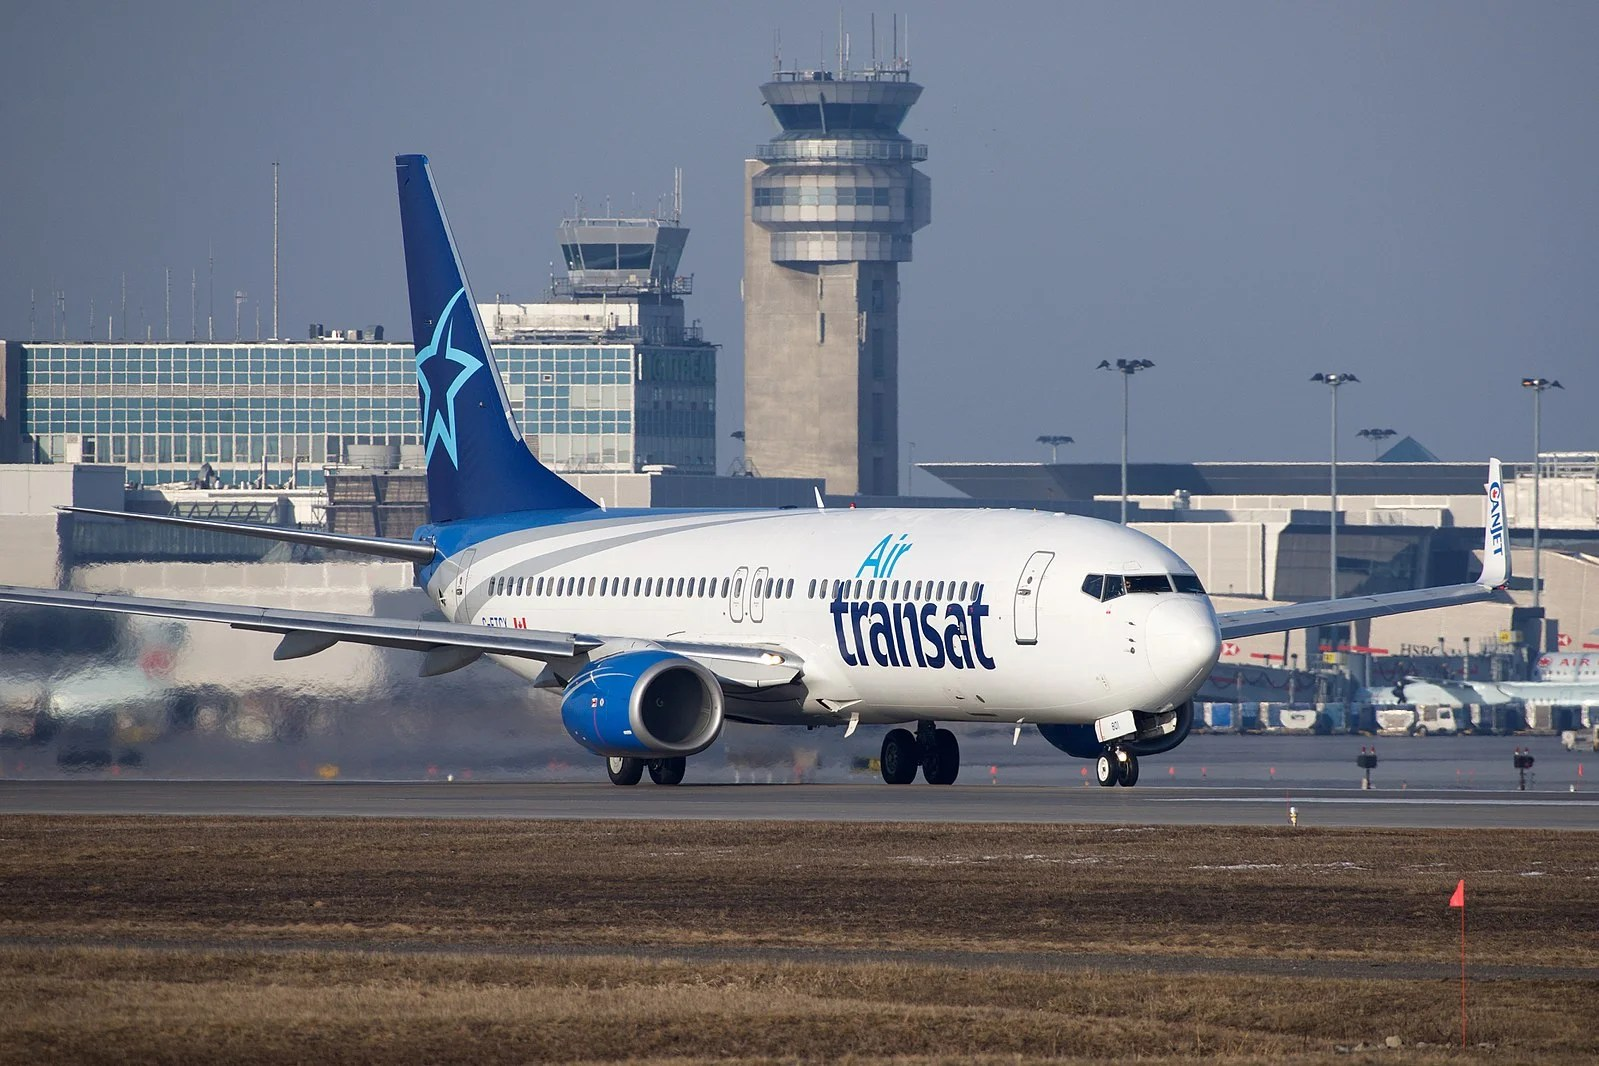 San Diego gets a nonstop route to Montreal on Air Transat